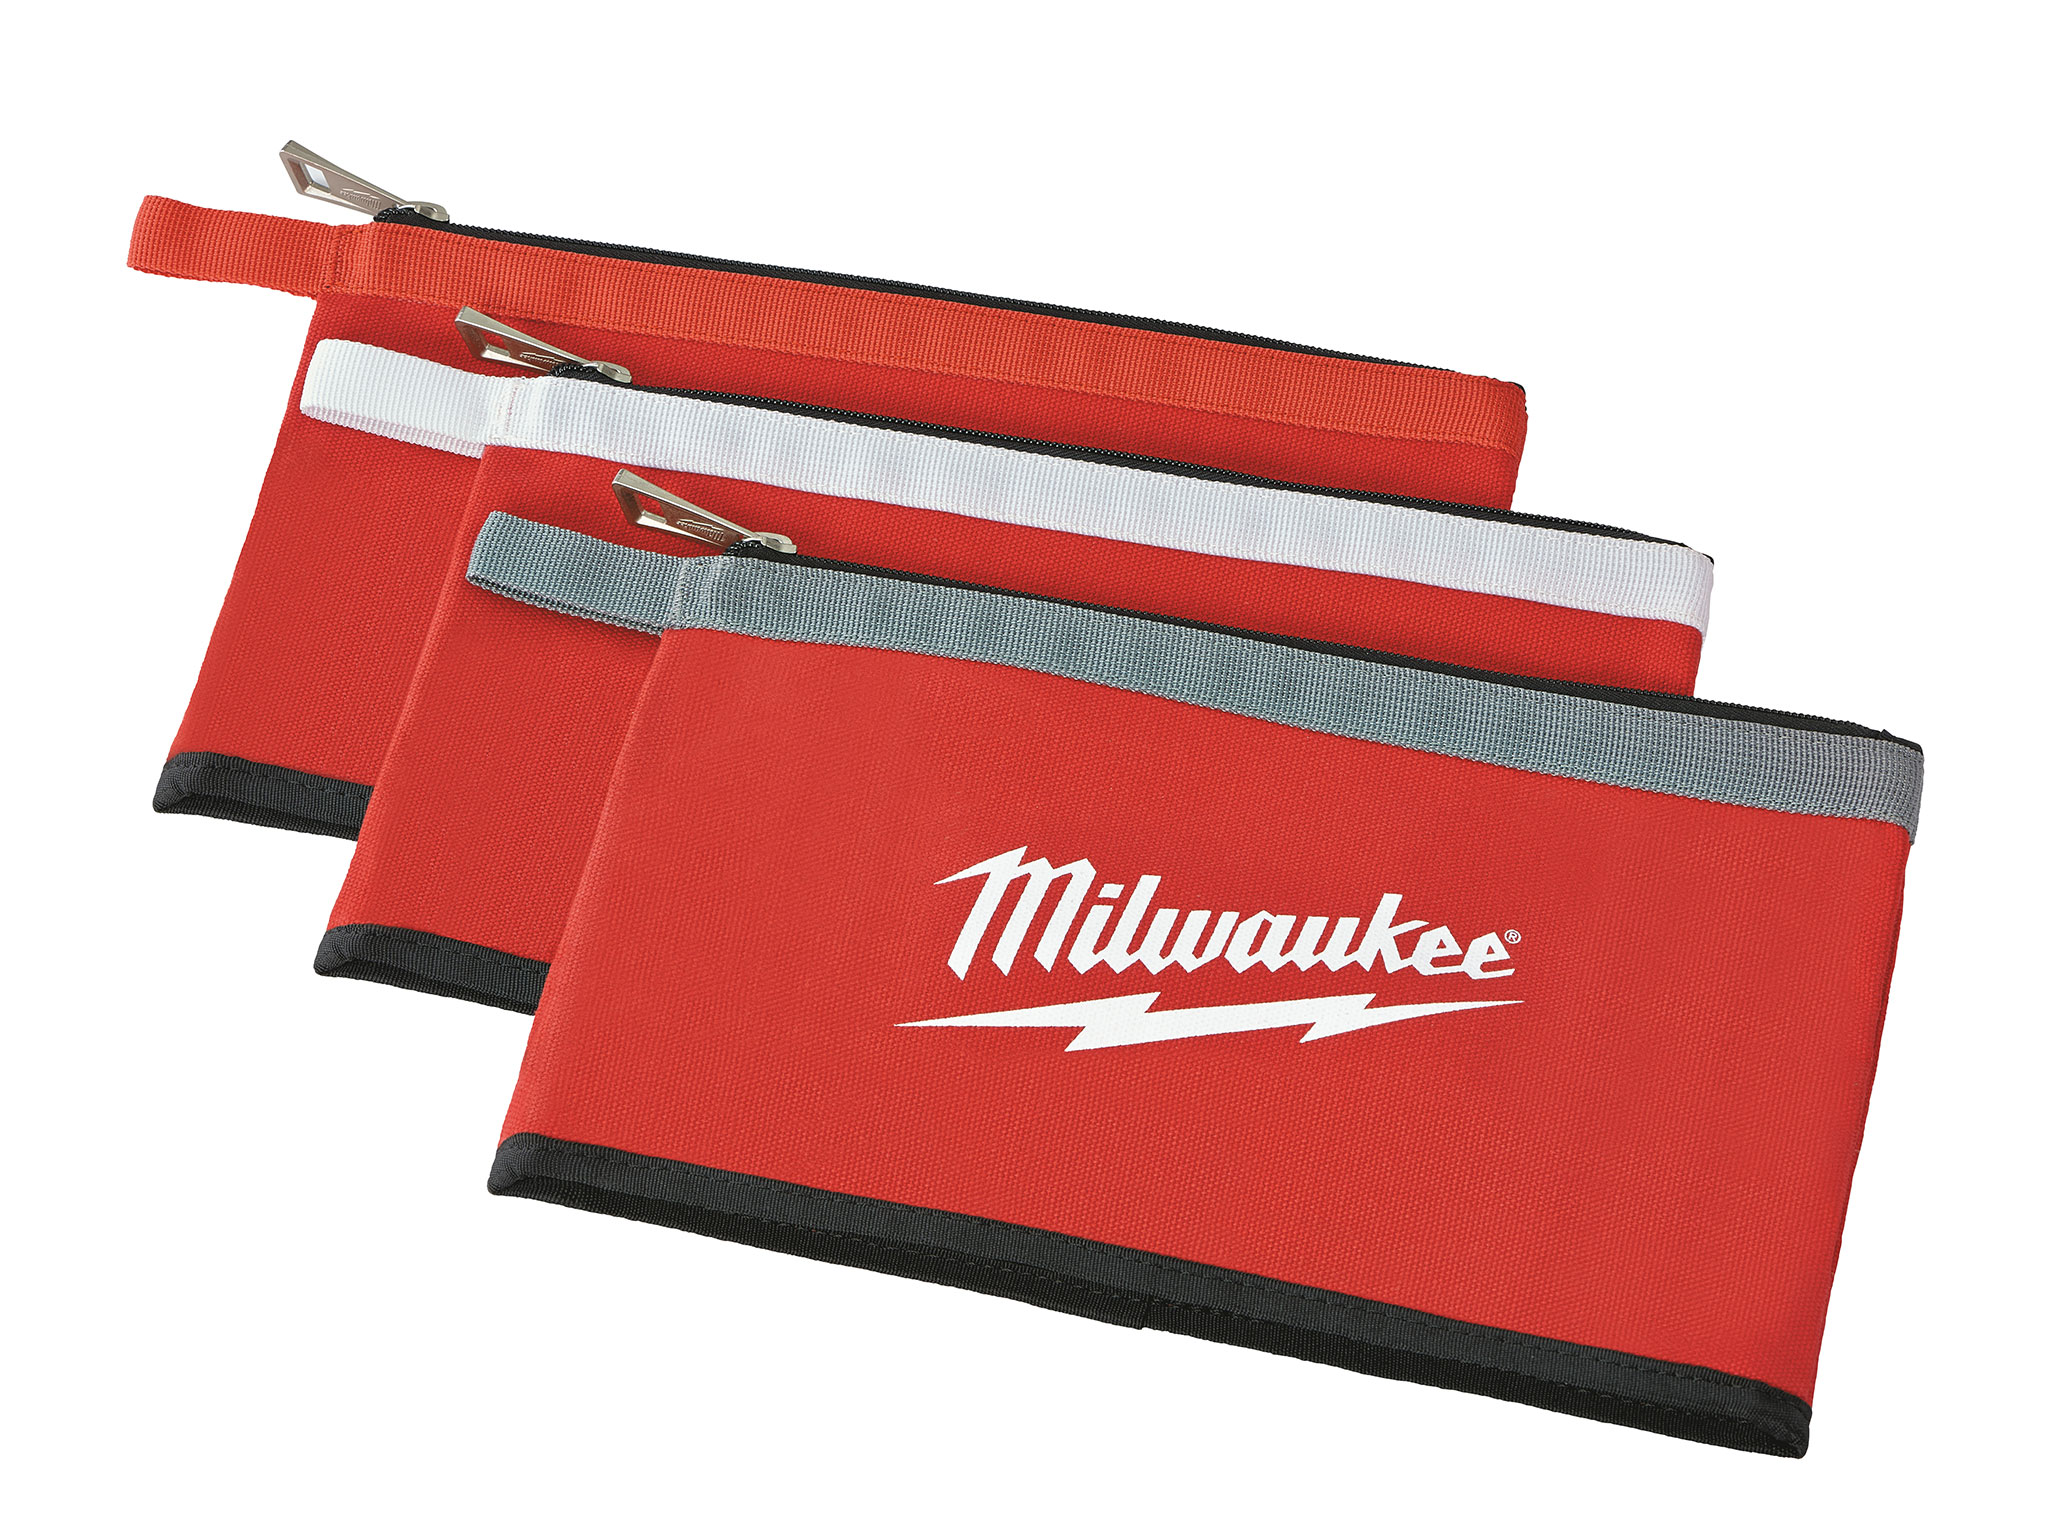 MIL 48-22-8193 3 PK ZIPPER POUCHES 3=1ea